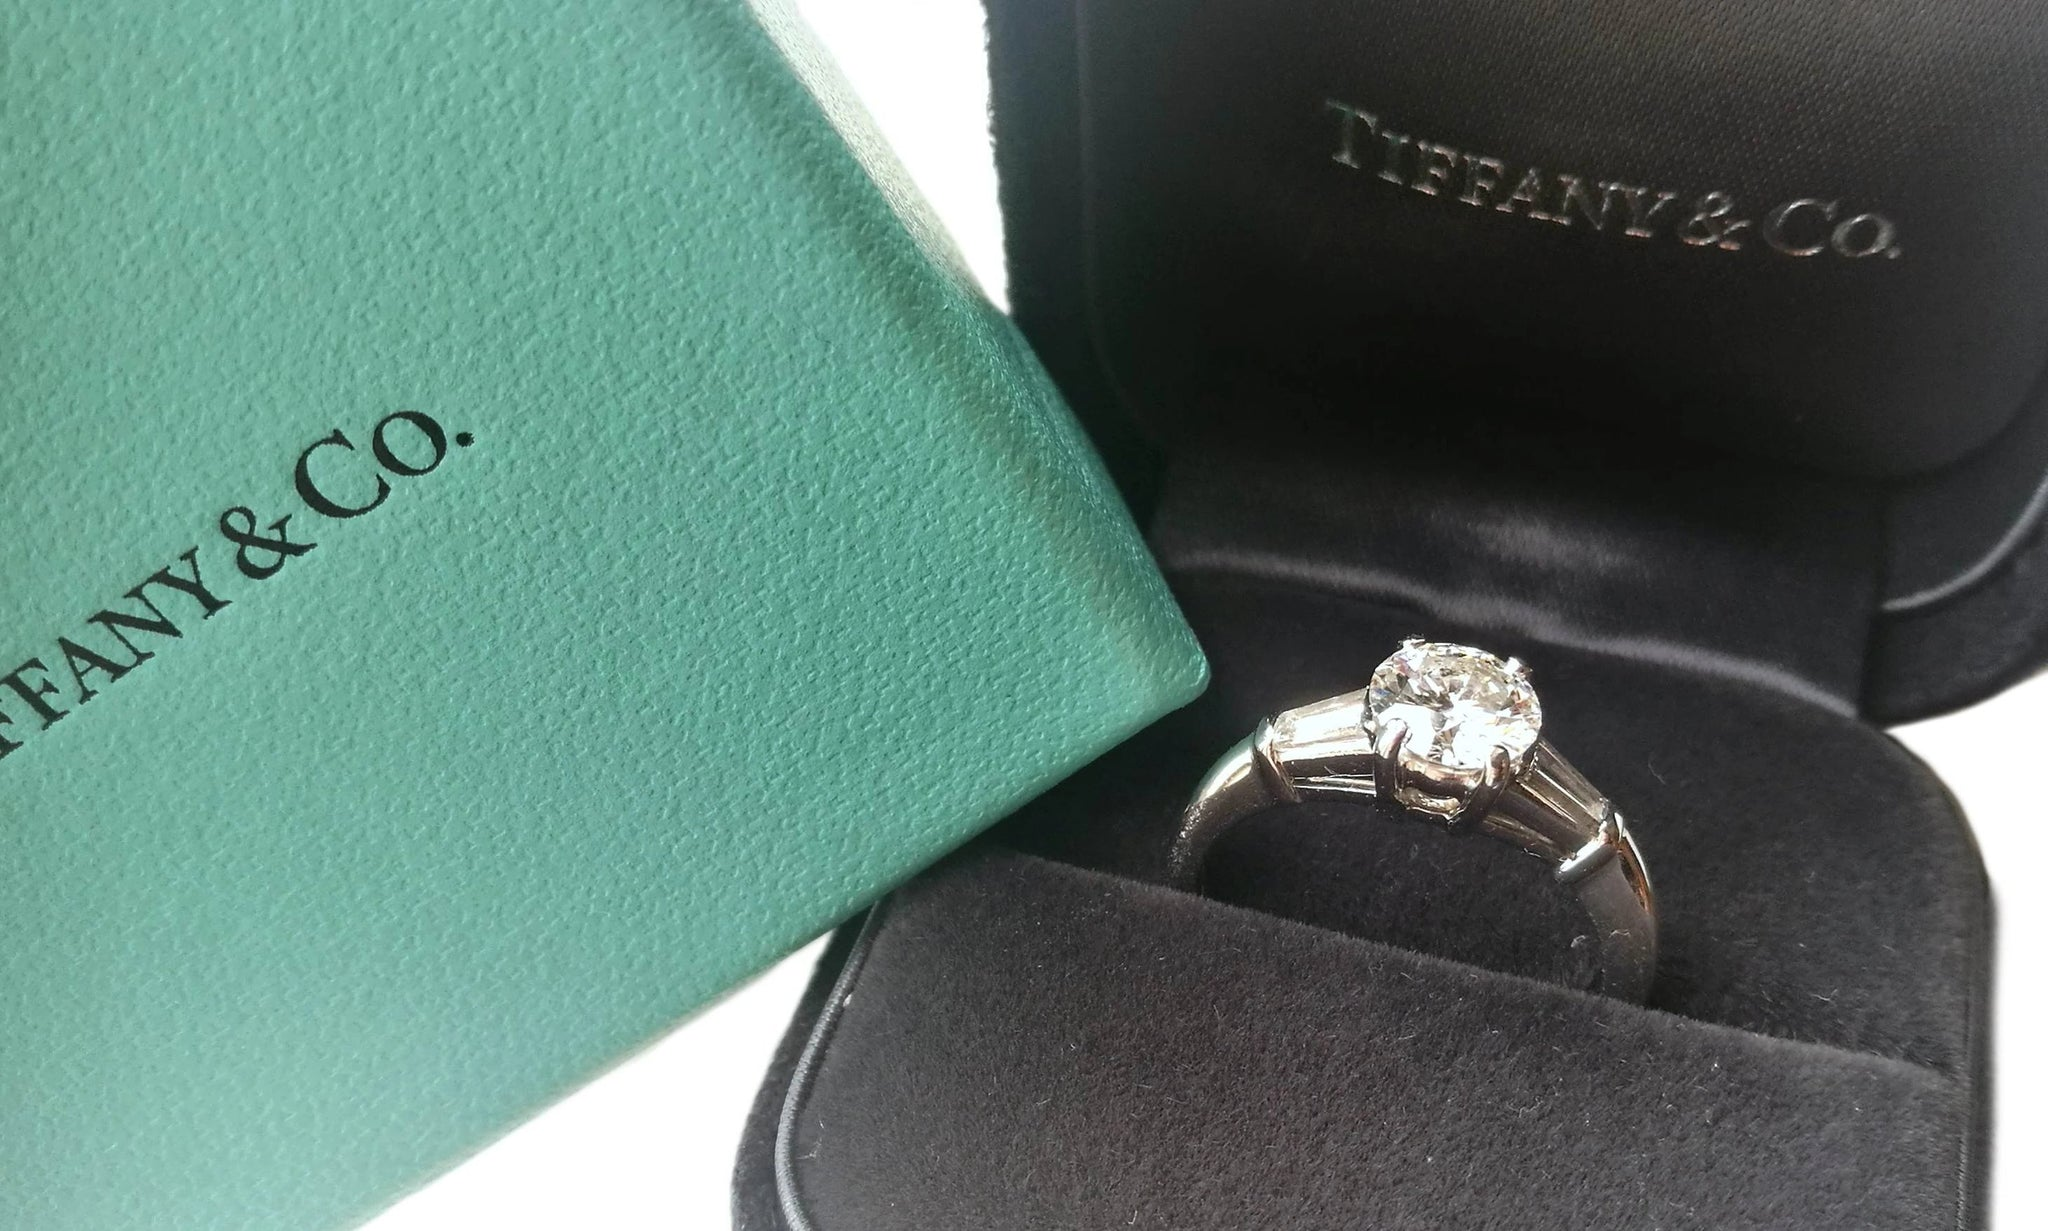 Tiffany & Co. 1.17ct G/VS1 3 Stone Diamond Engagement Ring with Baguette Side Stones in box